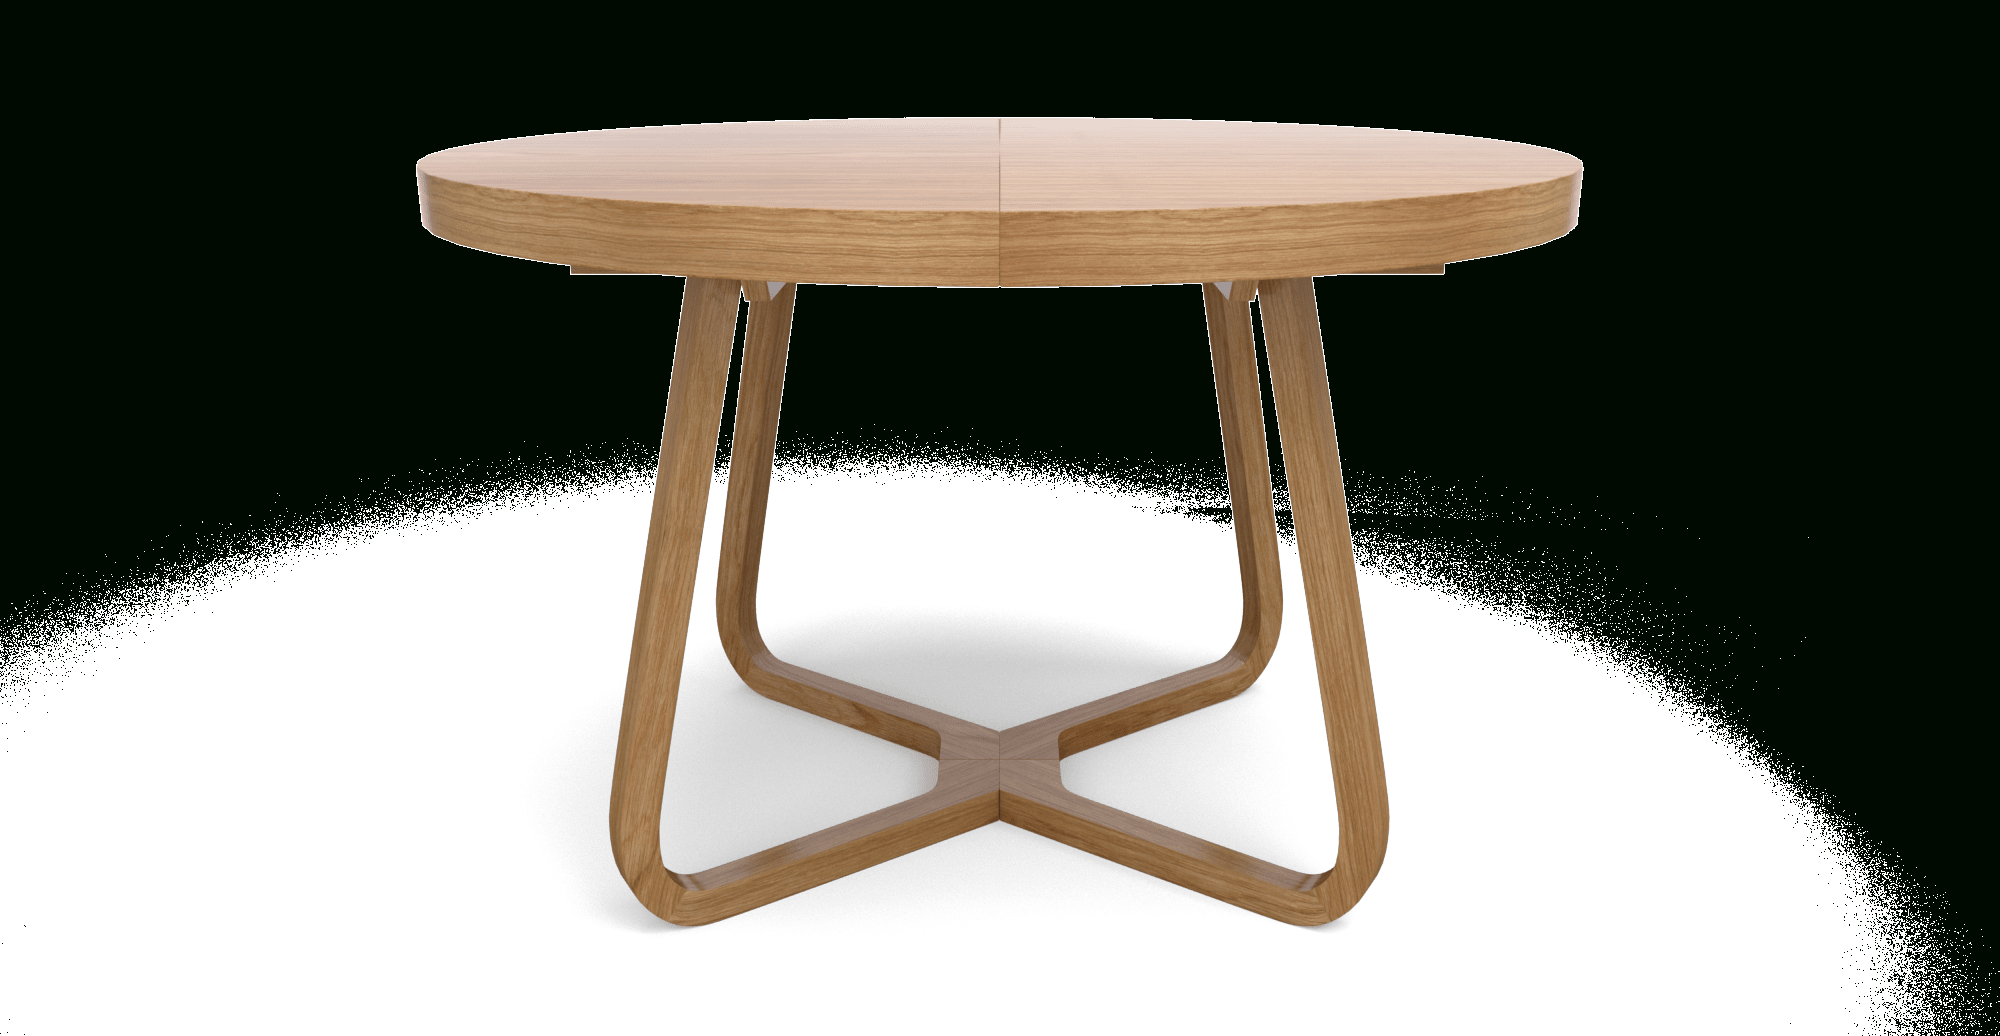 Preferred 8 Seater Wood Contemporary Dining Tables With Extension Leaf Throughout Romulus Extendable Dining Table 120/160Cm (View 21 of 25)